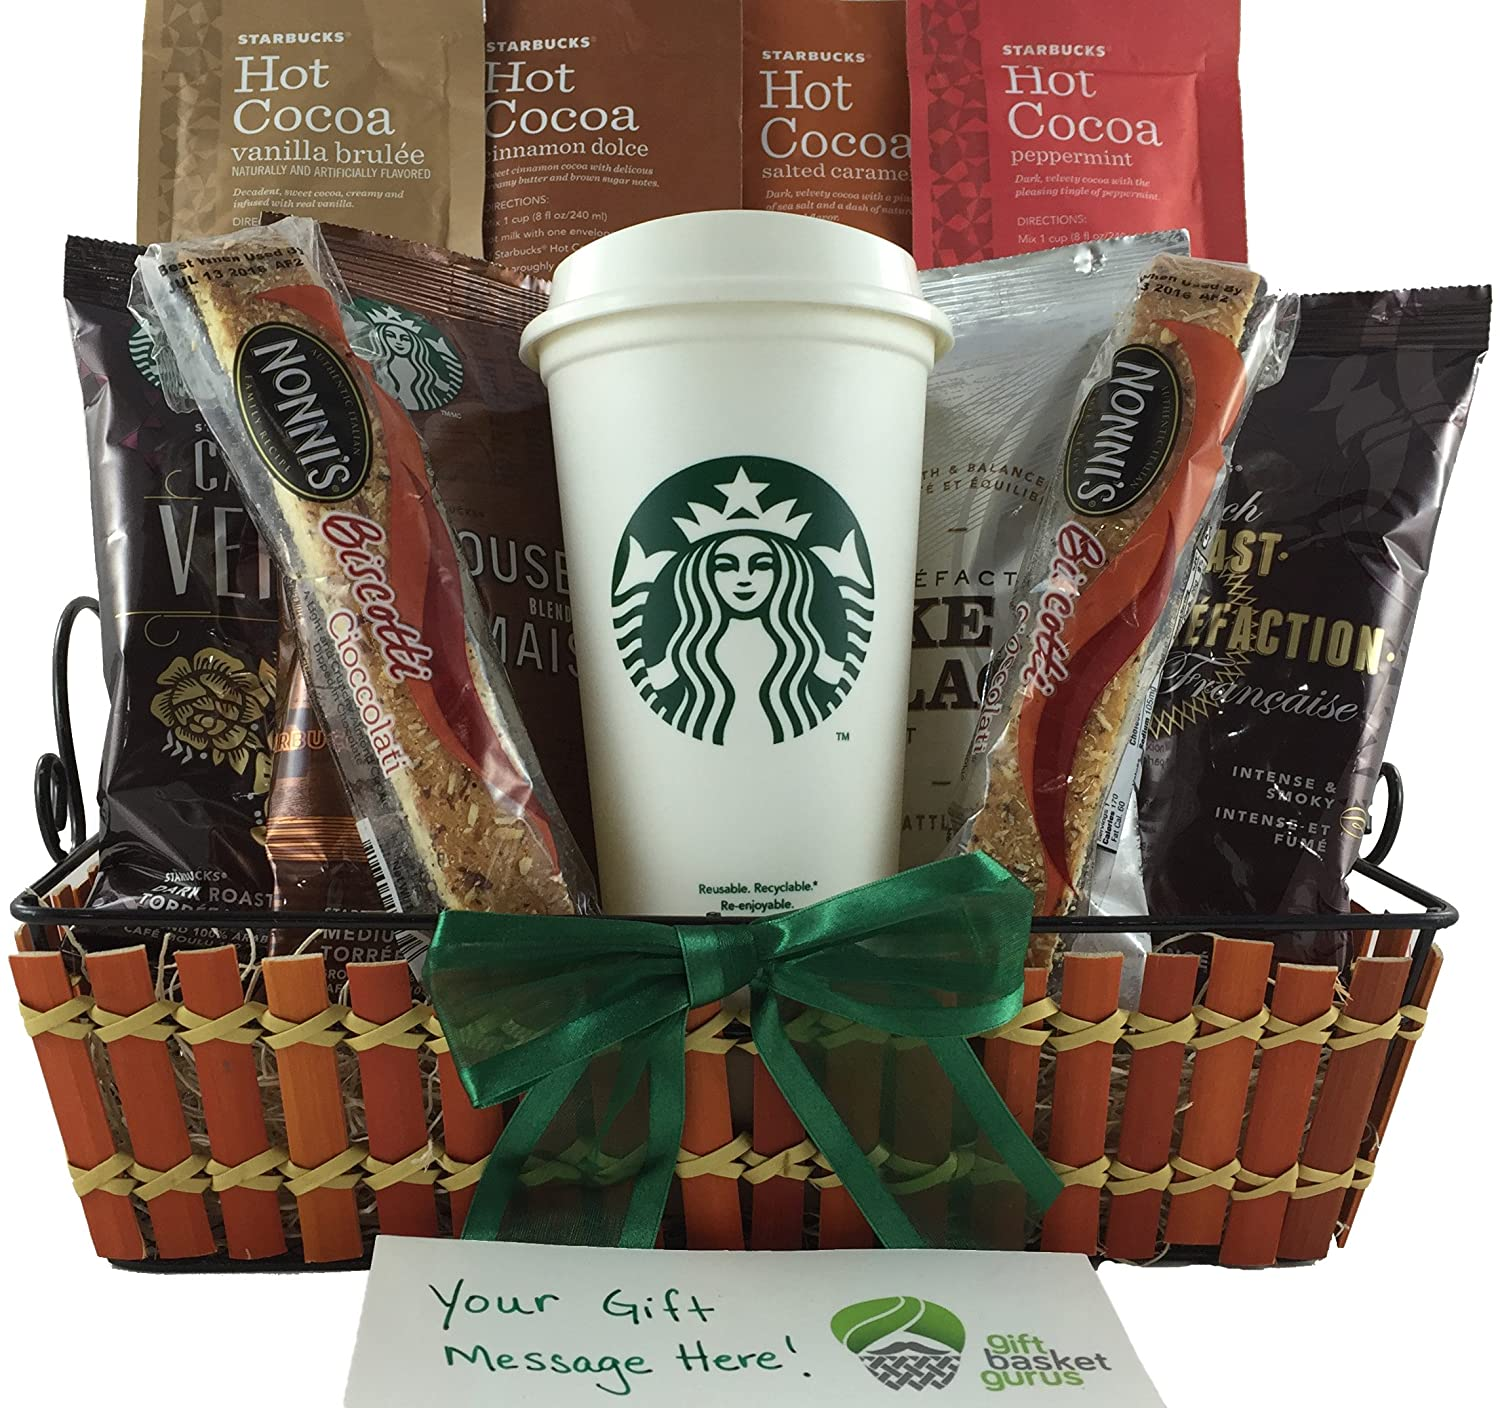 Amazon starbucks coffee and cocoa sampler gift basket amazon starbucks coffee and cocoa sampler gift basket grocery gourmet food negle Gallery